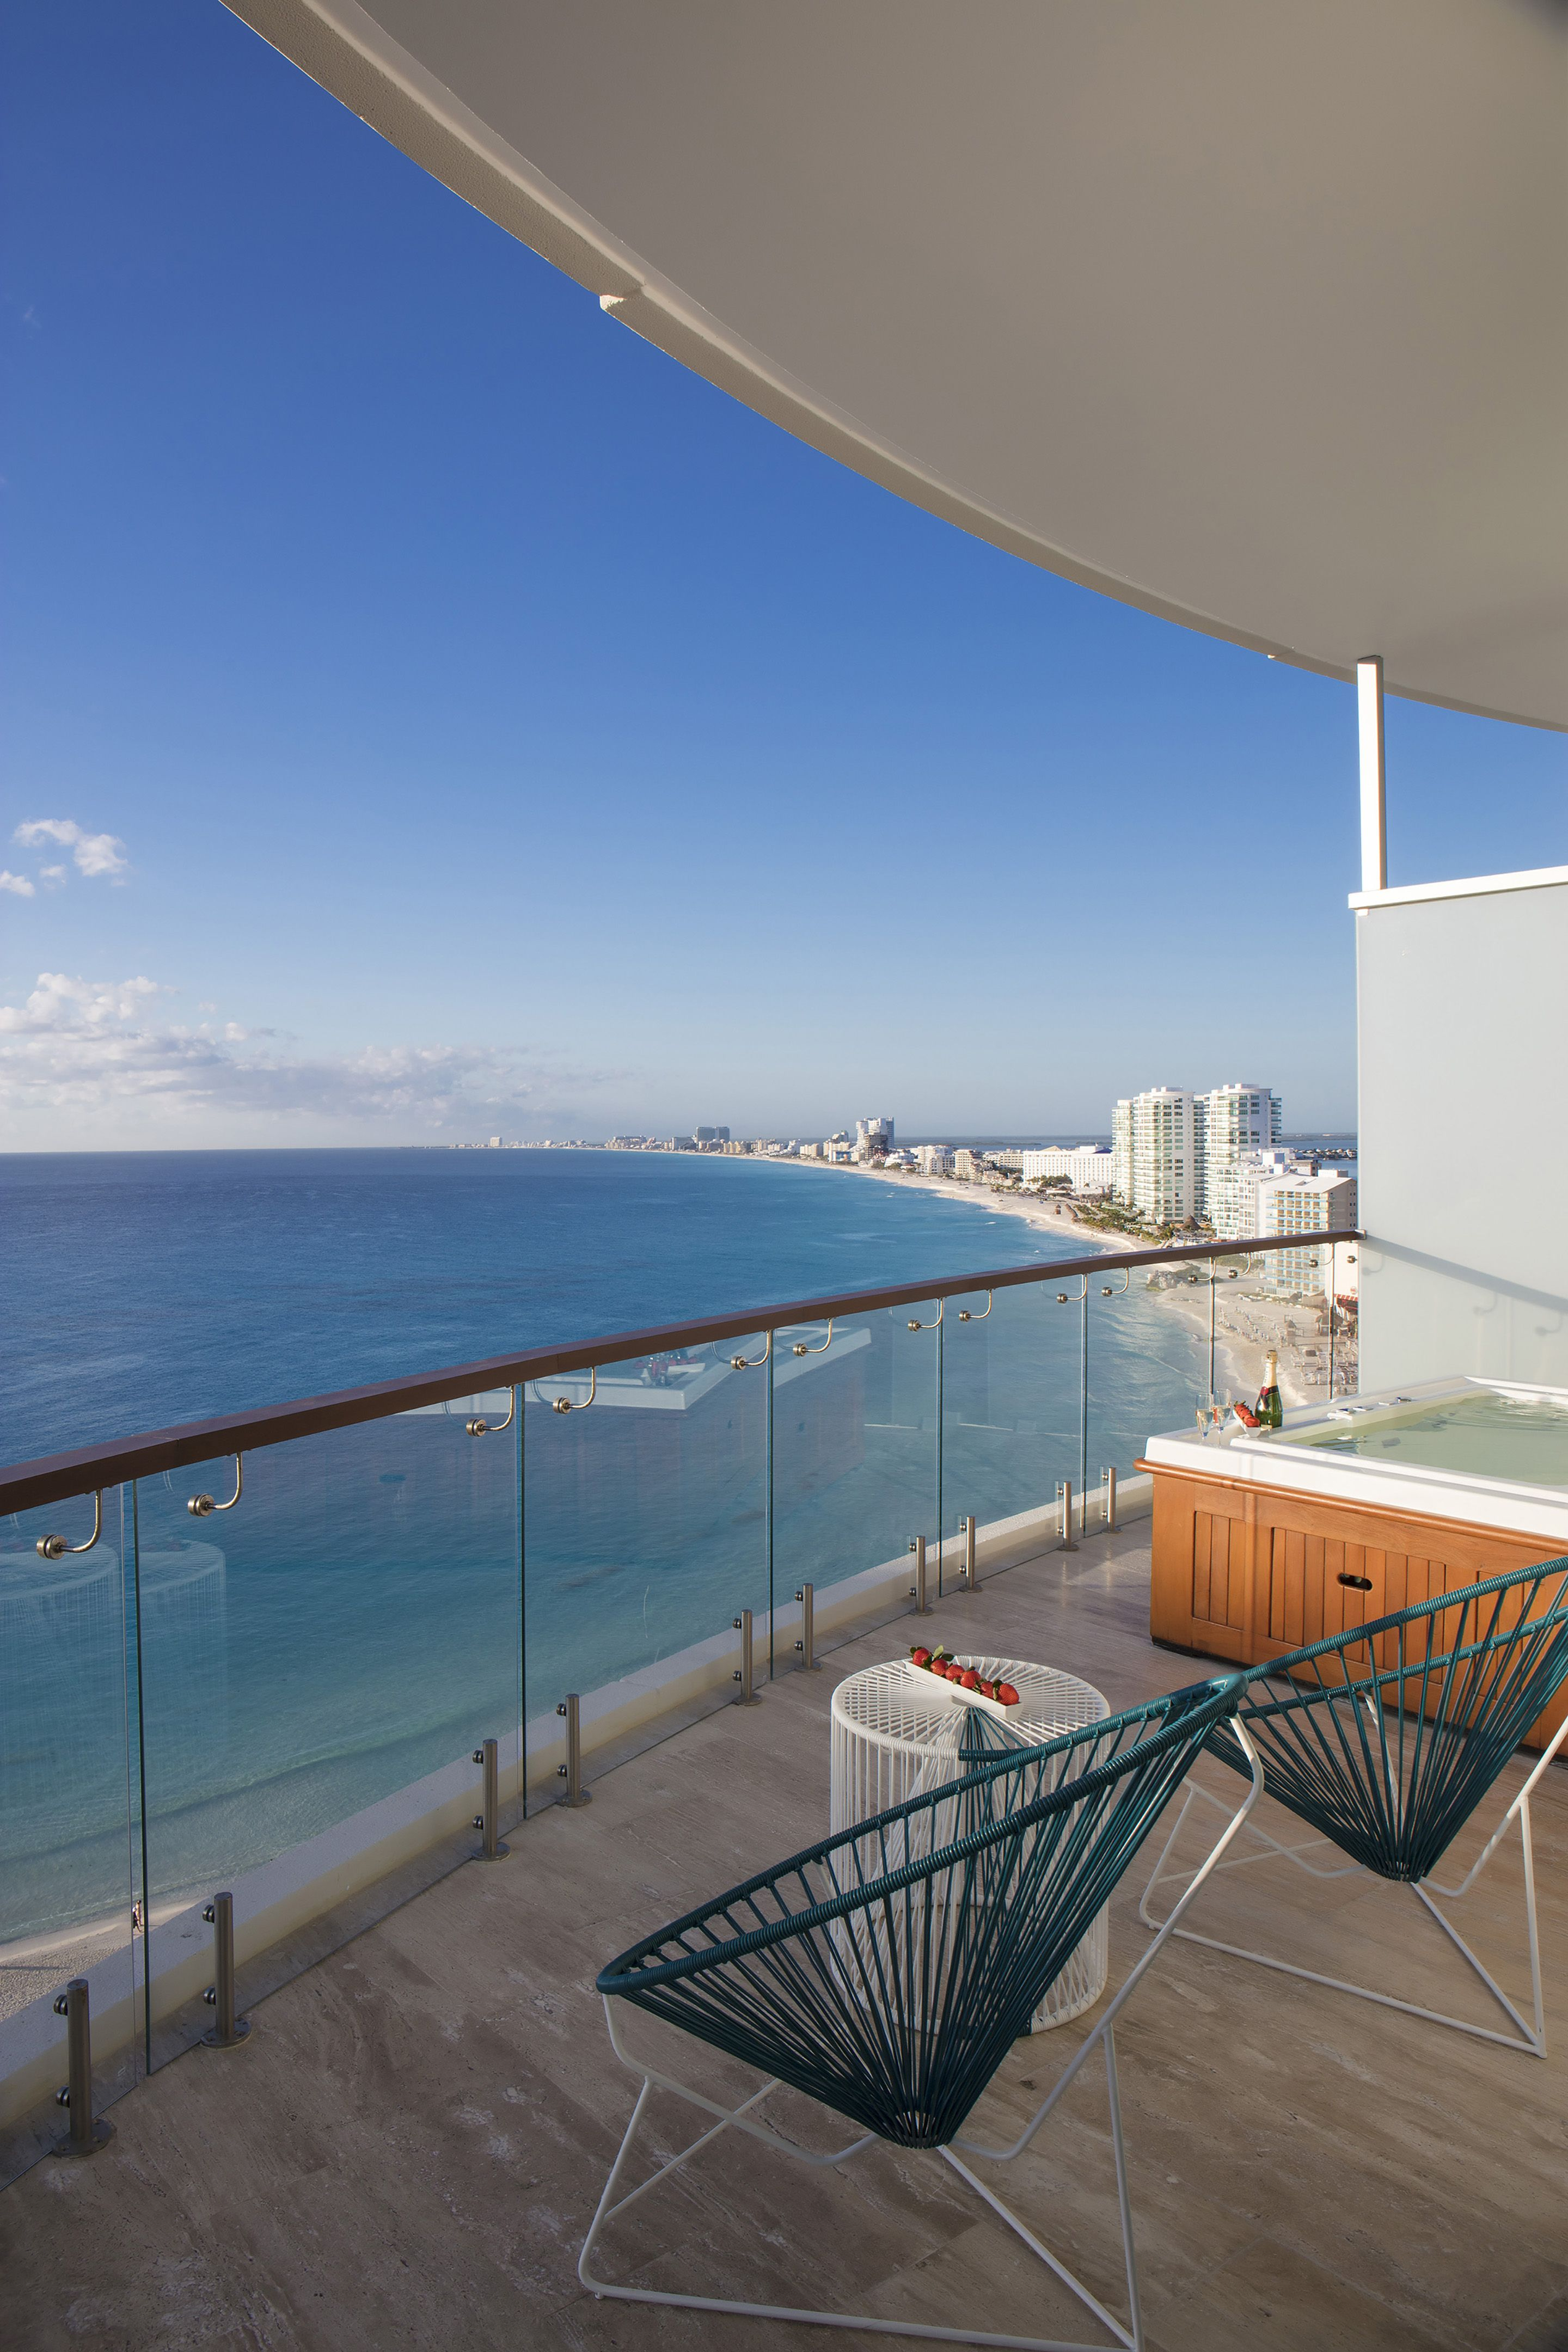 A Beautiful View Is Waiting For You At Reflect Krystal Grand Cancun